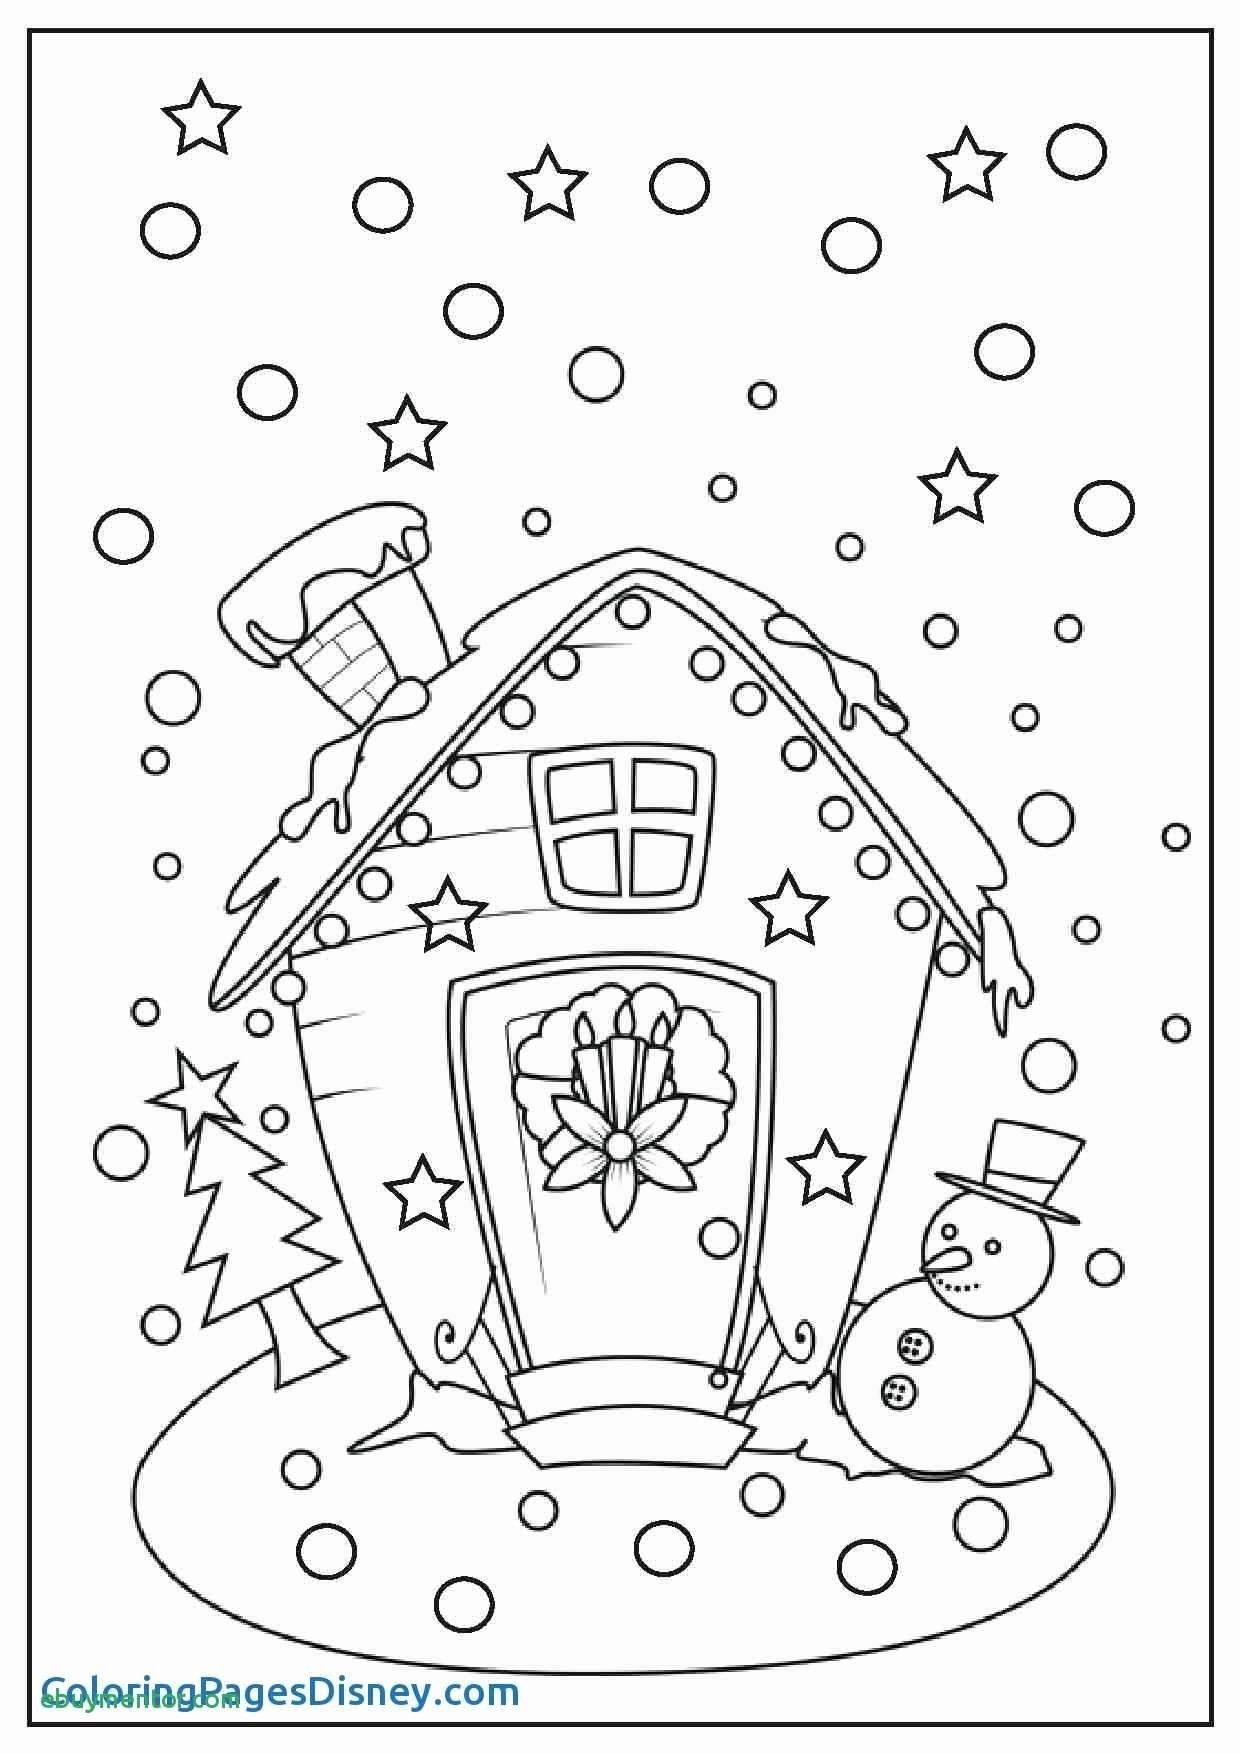 10 Flag Coloring Pages Flag Coloring Pages Africa Flag